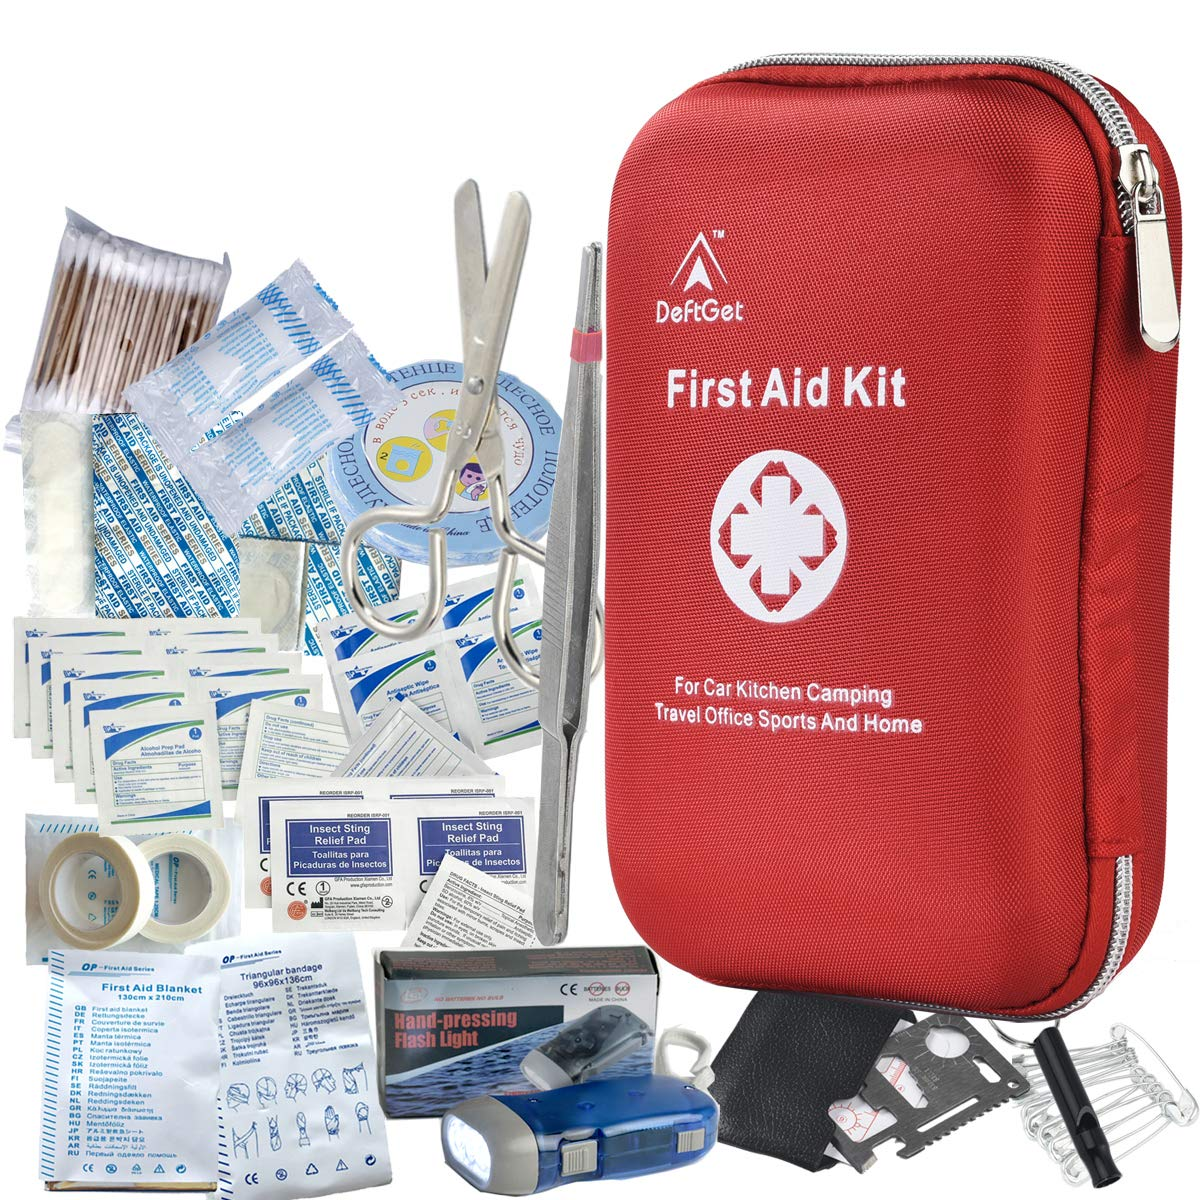 DeftGet-First-Aid-Kit--163-Piece-Waterproof-Portable-Essential-Injuries--Red-Cross-Medical-Emergency-Equipment-Kits--for-Car-Kitchen-Camping-Travel-Office-Sports-and-Home